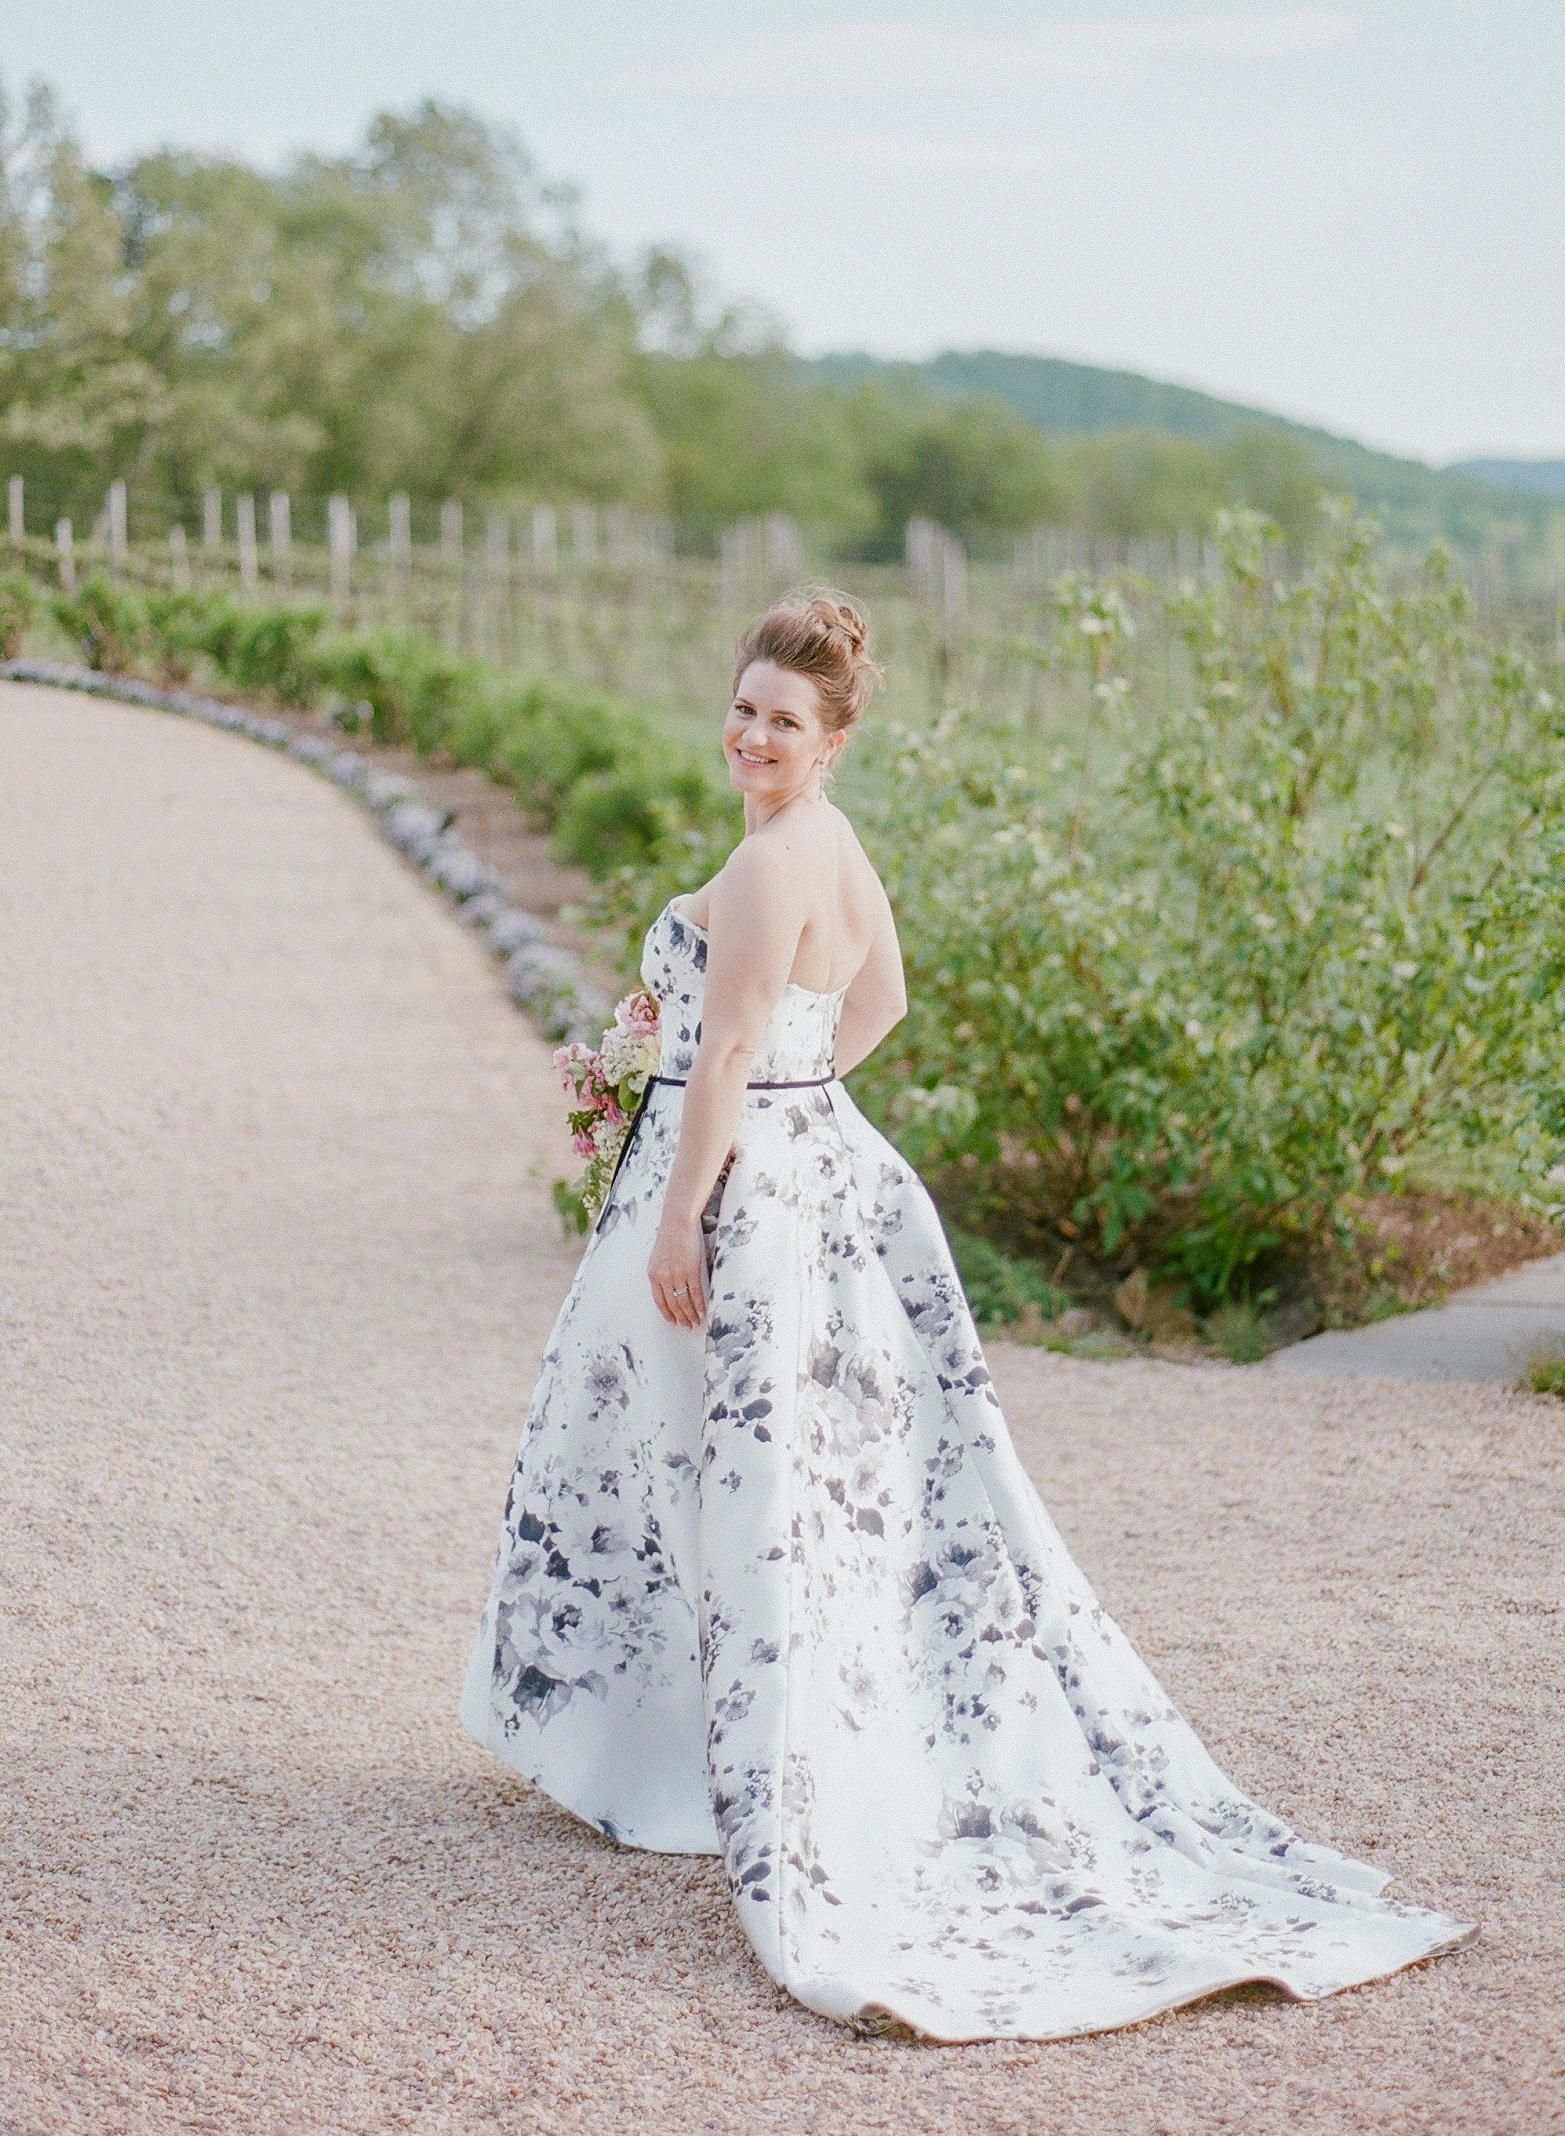 mechelle julia wedding bride floral dress